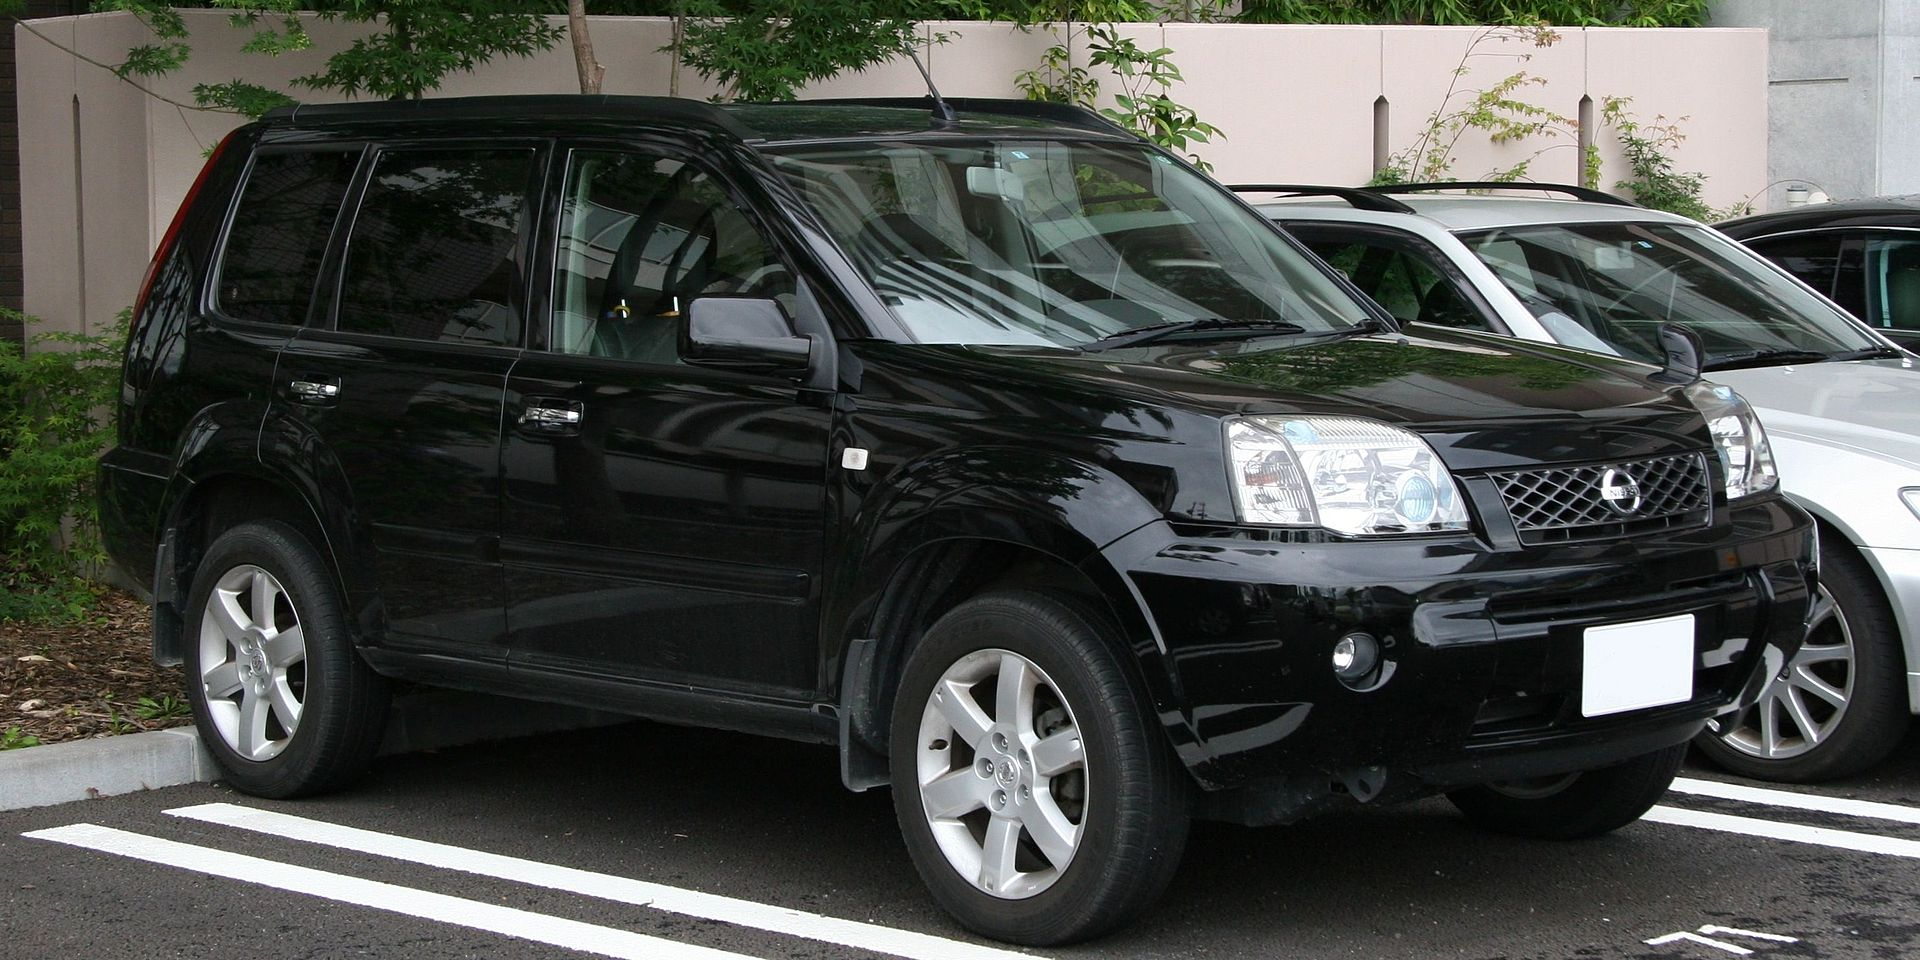 Nissan X-Trail - Wikipedia bahasa Indonesia, ensiklopedia ...